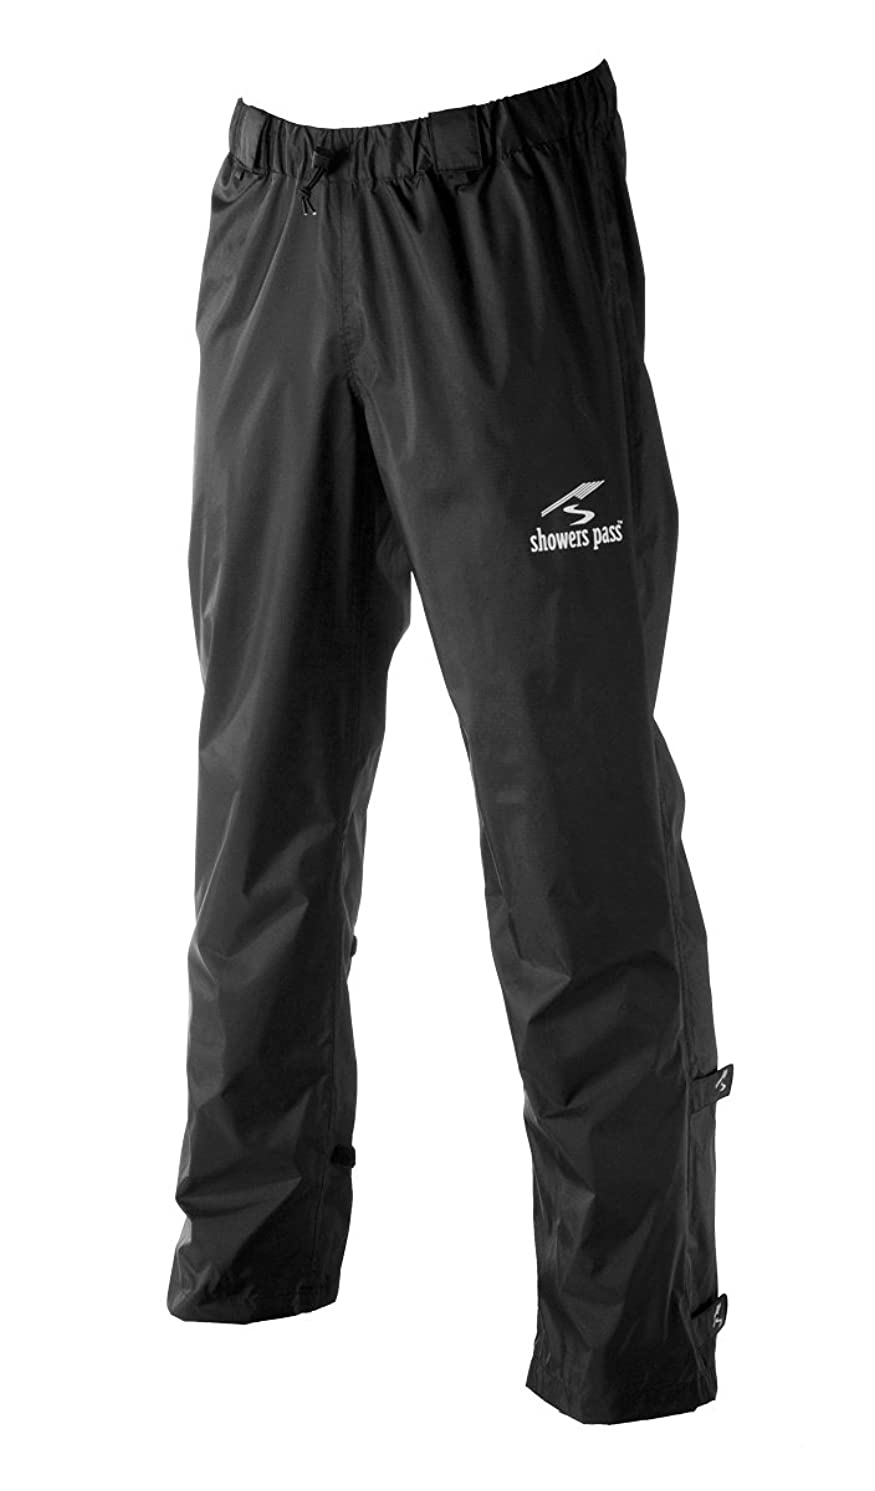 Showers Pass Storm Pant - Waterproof and Breathable